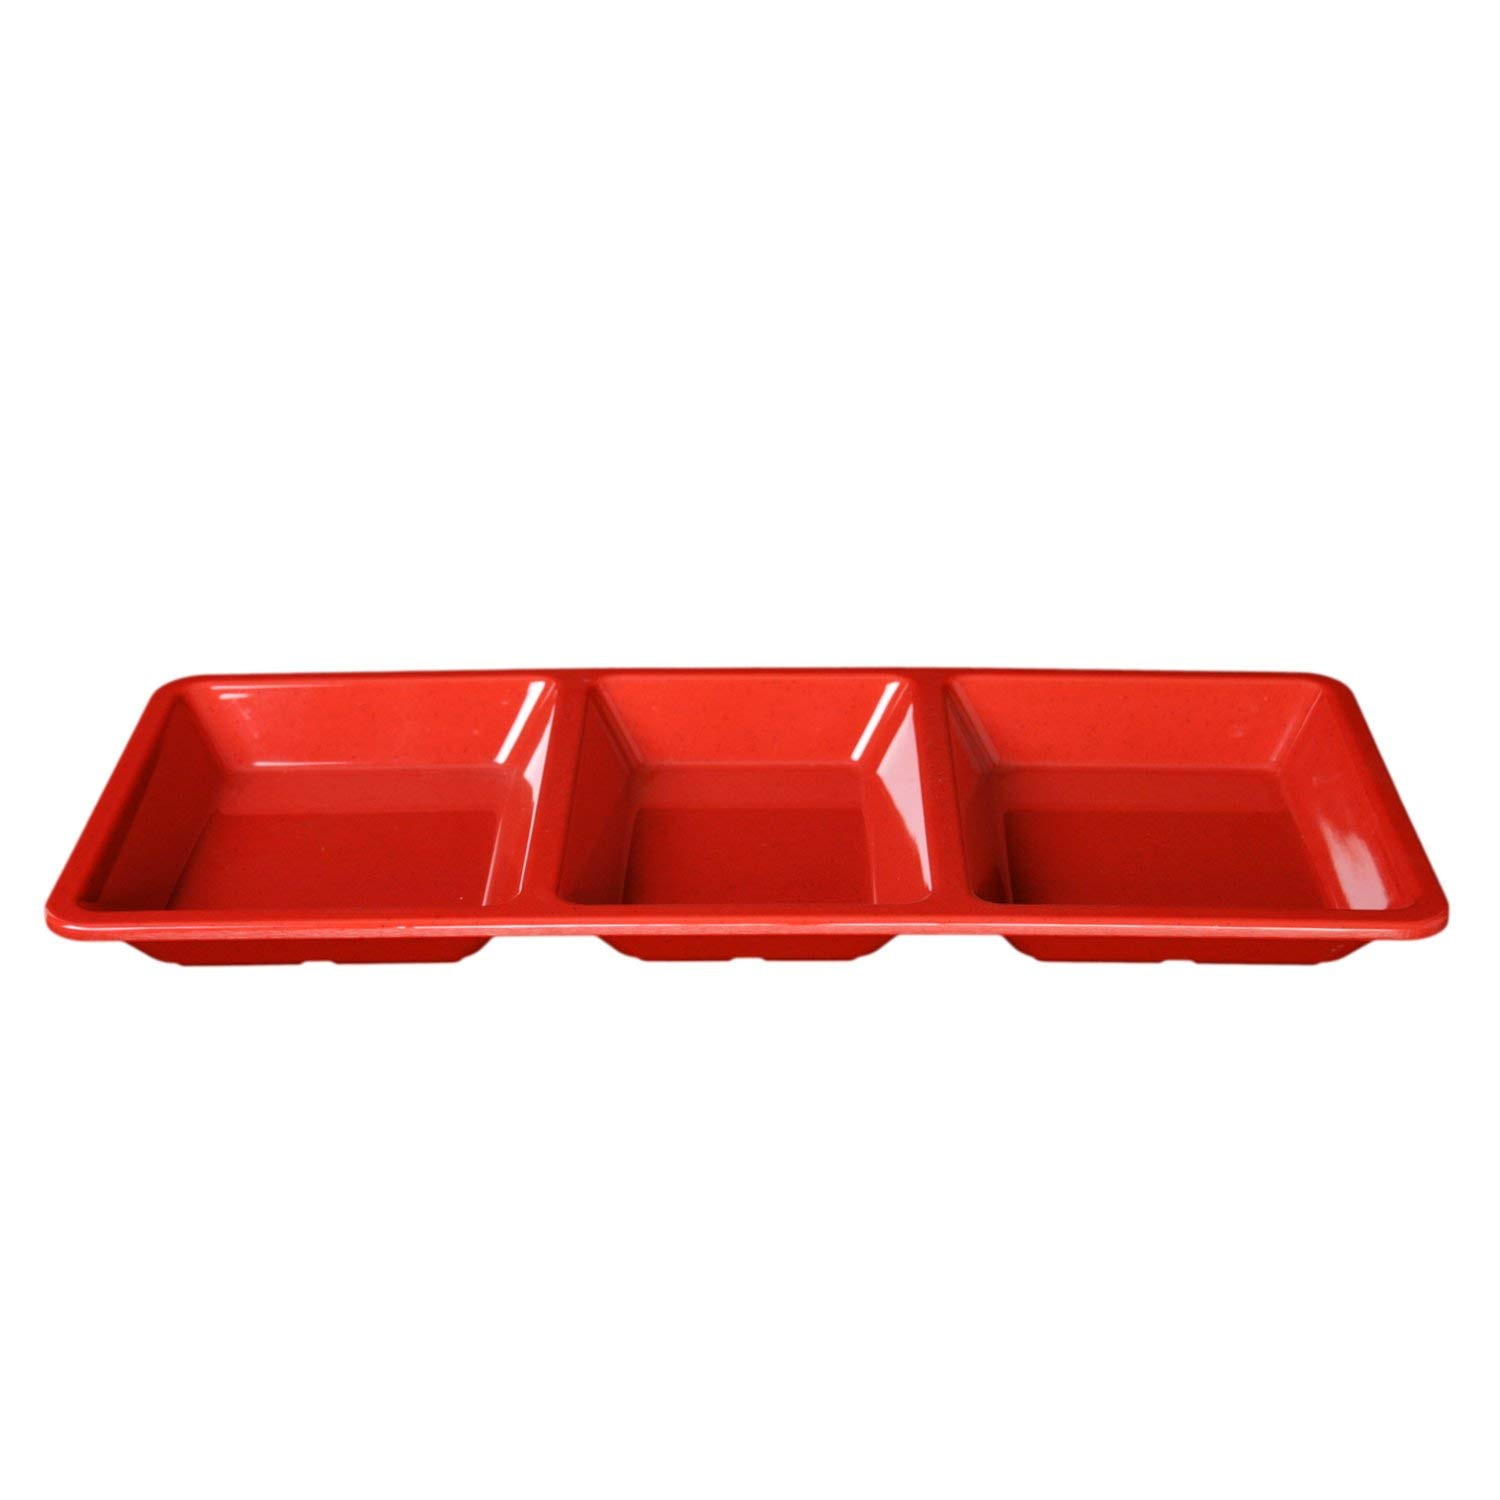 Excellante 1-Piece 28-Ounce Jazz Series Rectangular 3-Section Compartment Tray, 15-Inch by 6-1/4-Inch by 1-3/8-Inch, Jazz Red